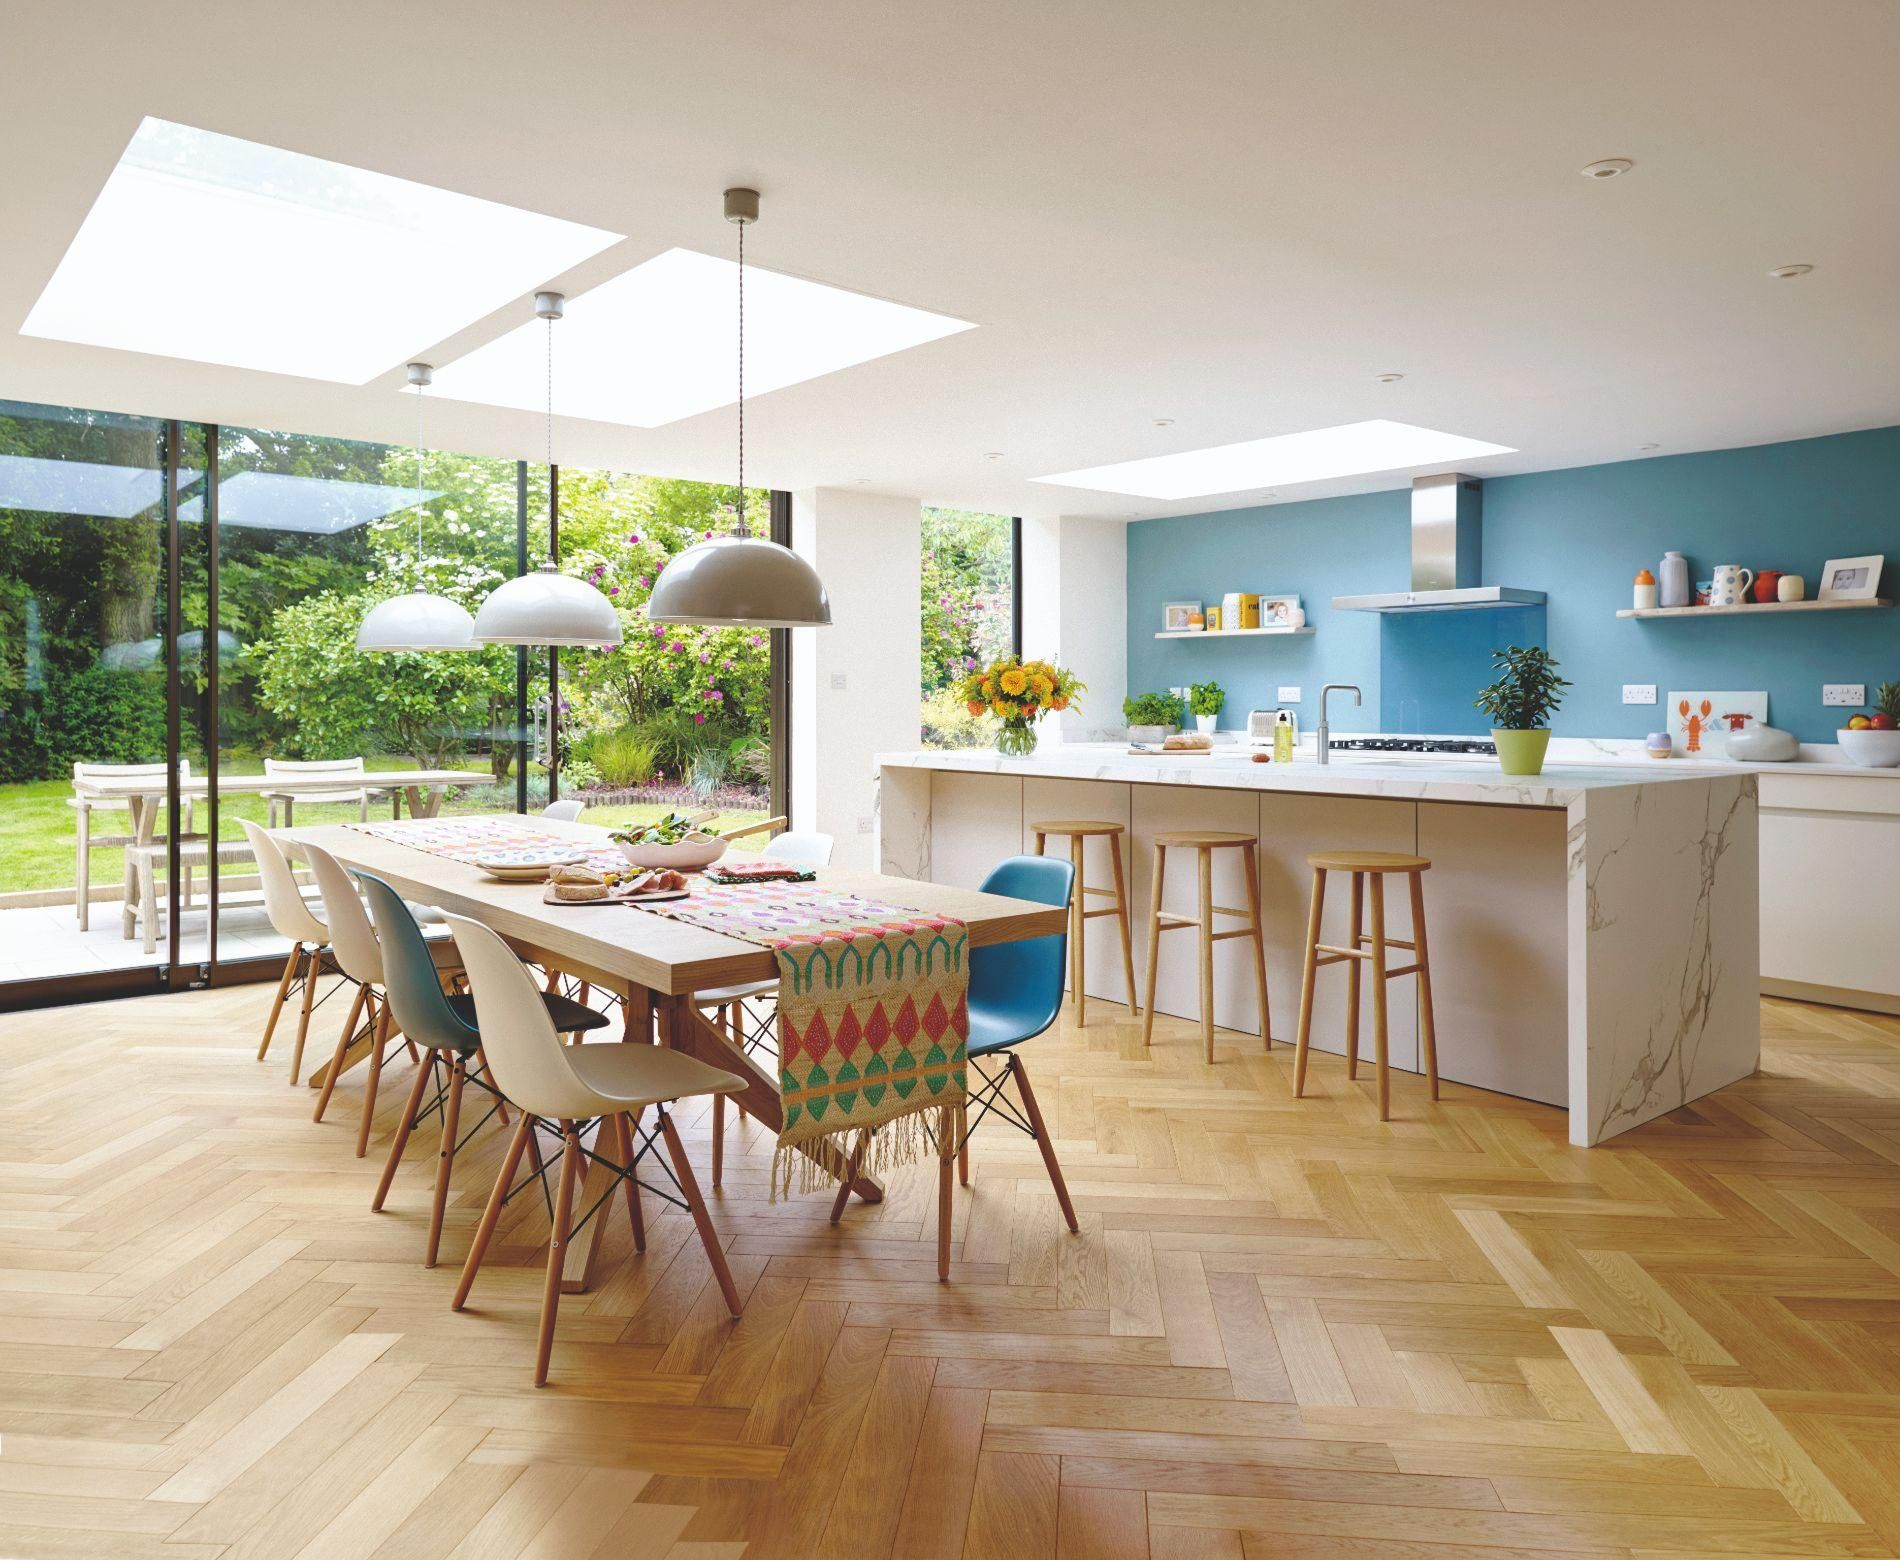 The essential homebuilding and renovating event in Glasgow